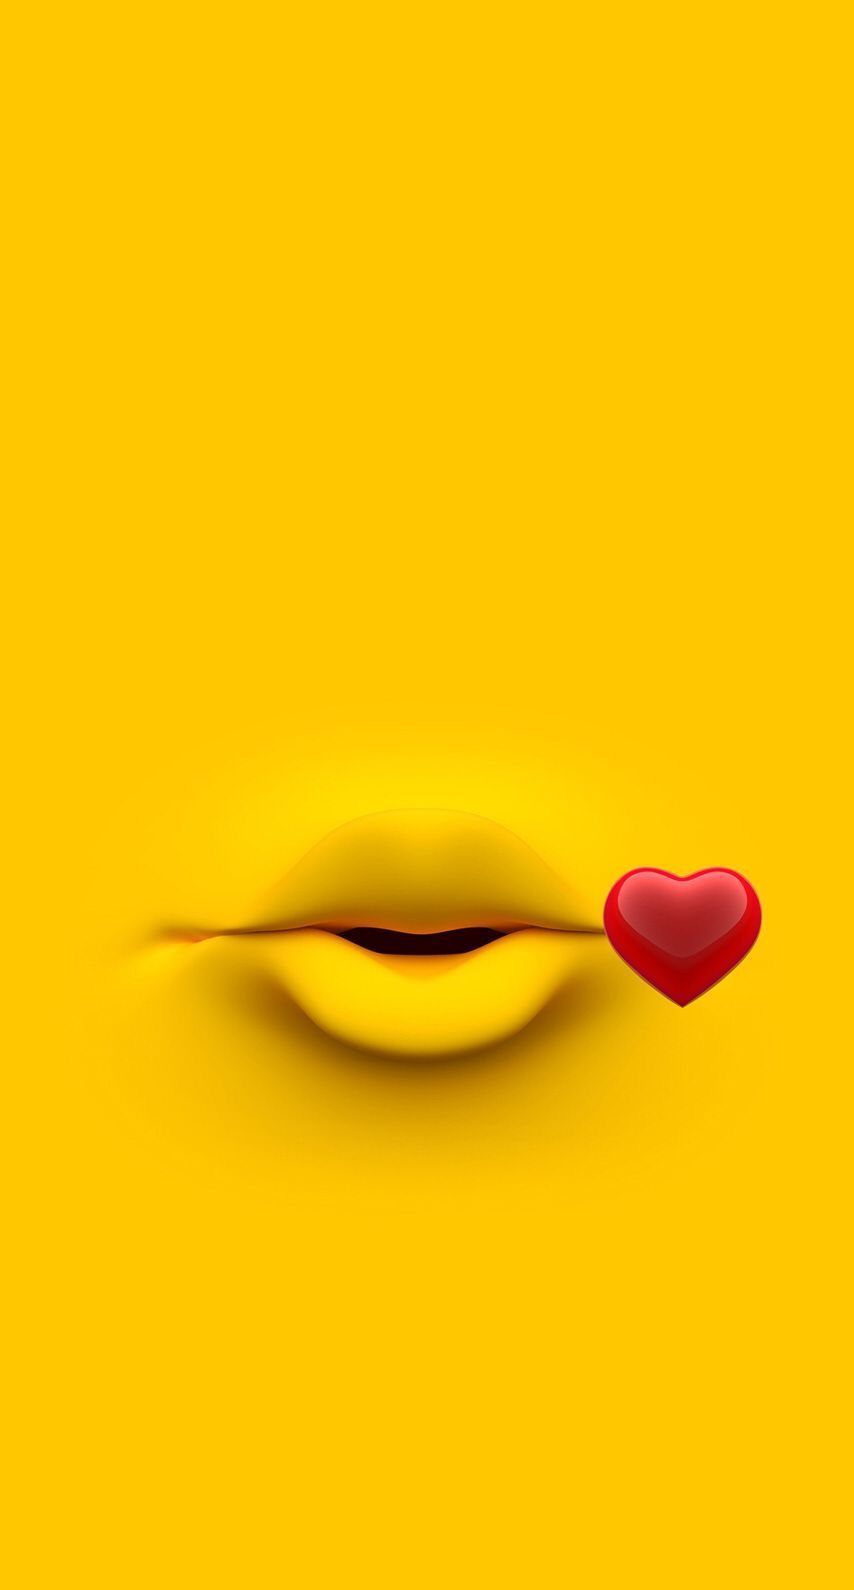 Emoji HD Android Wallpapers - Wallpaper Cave